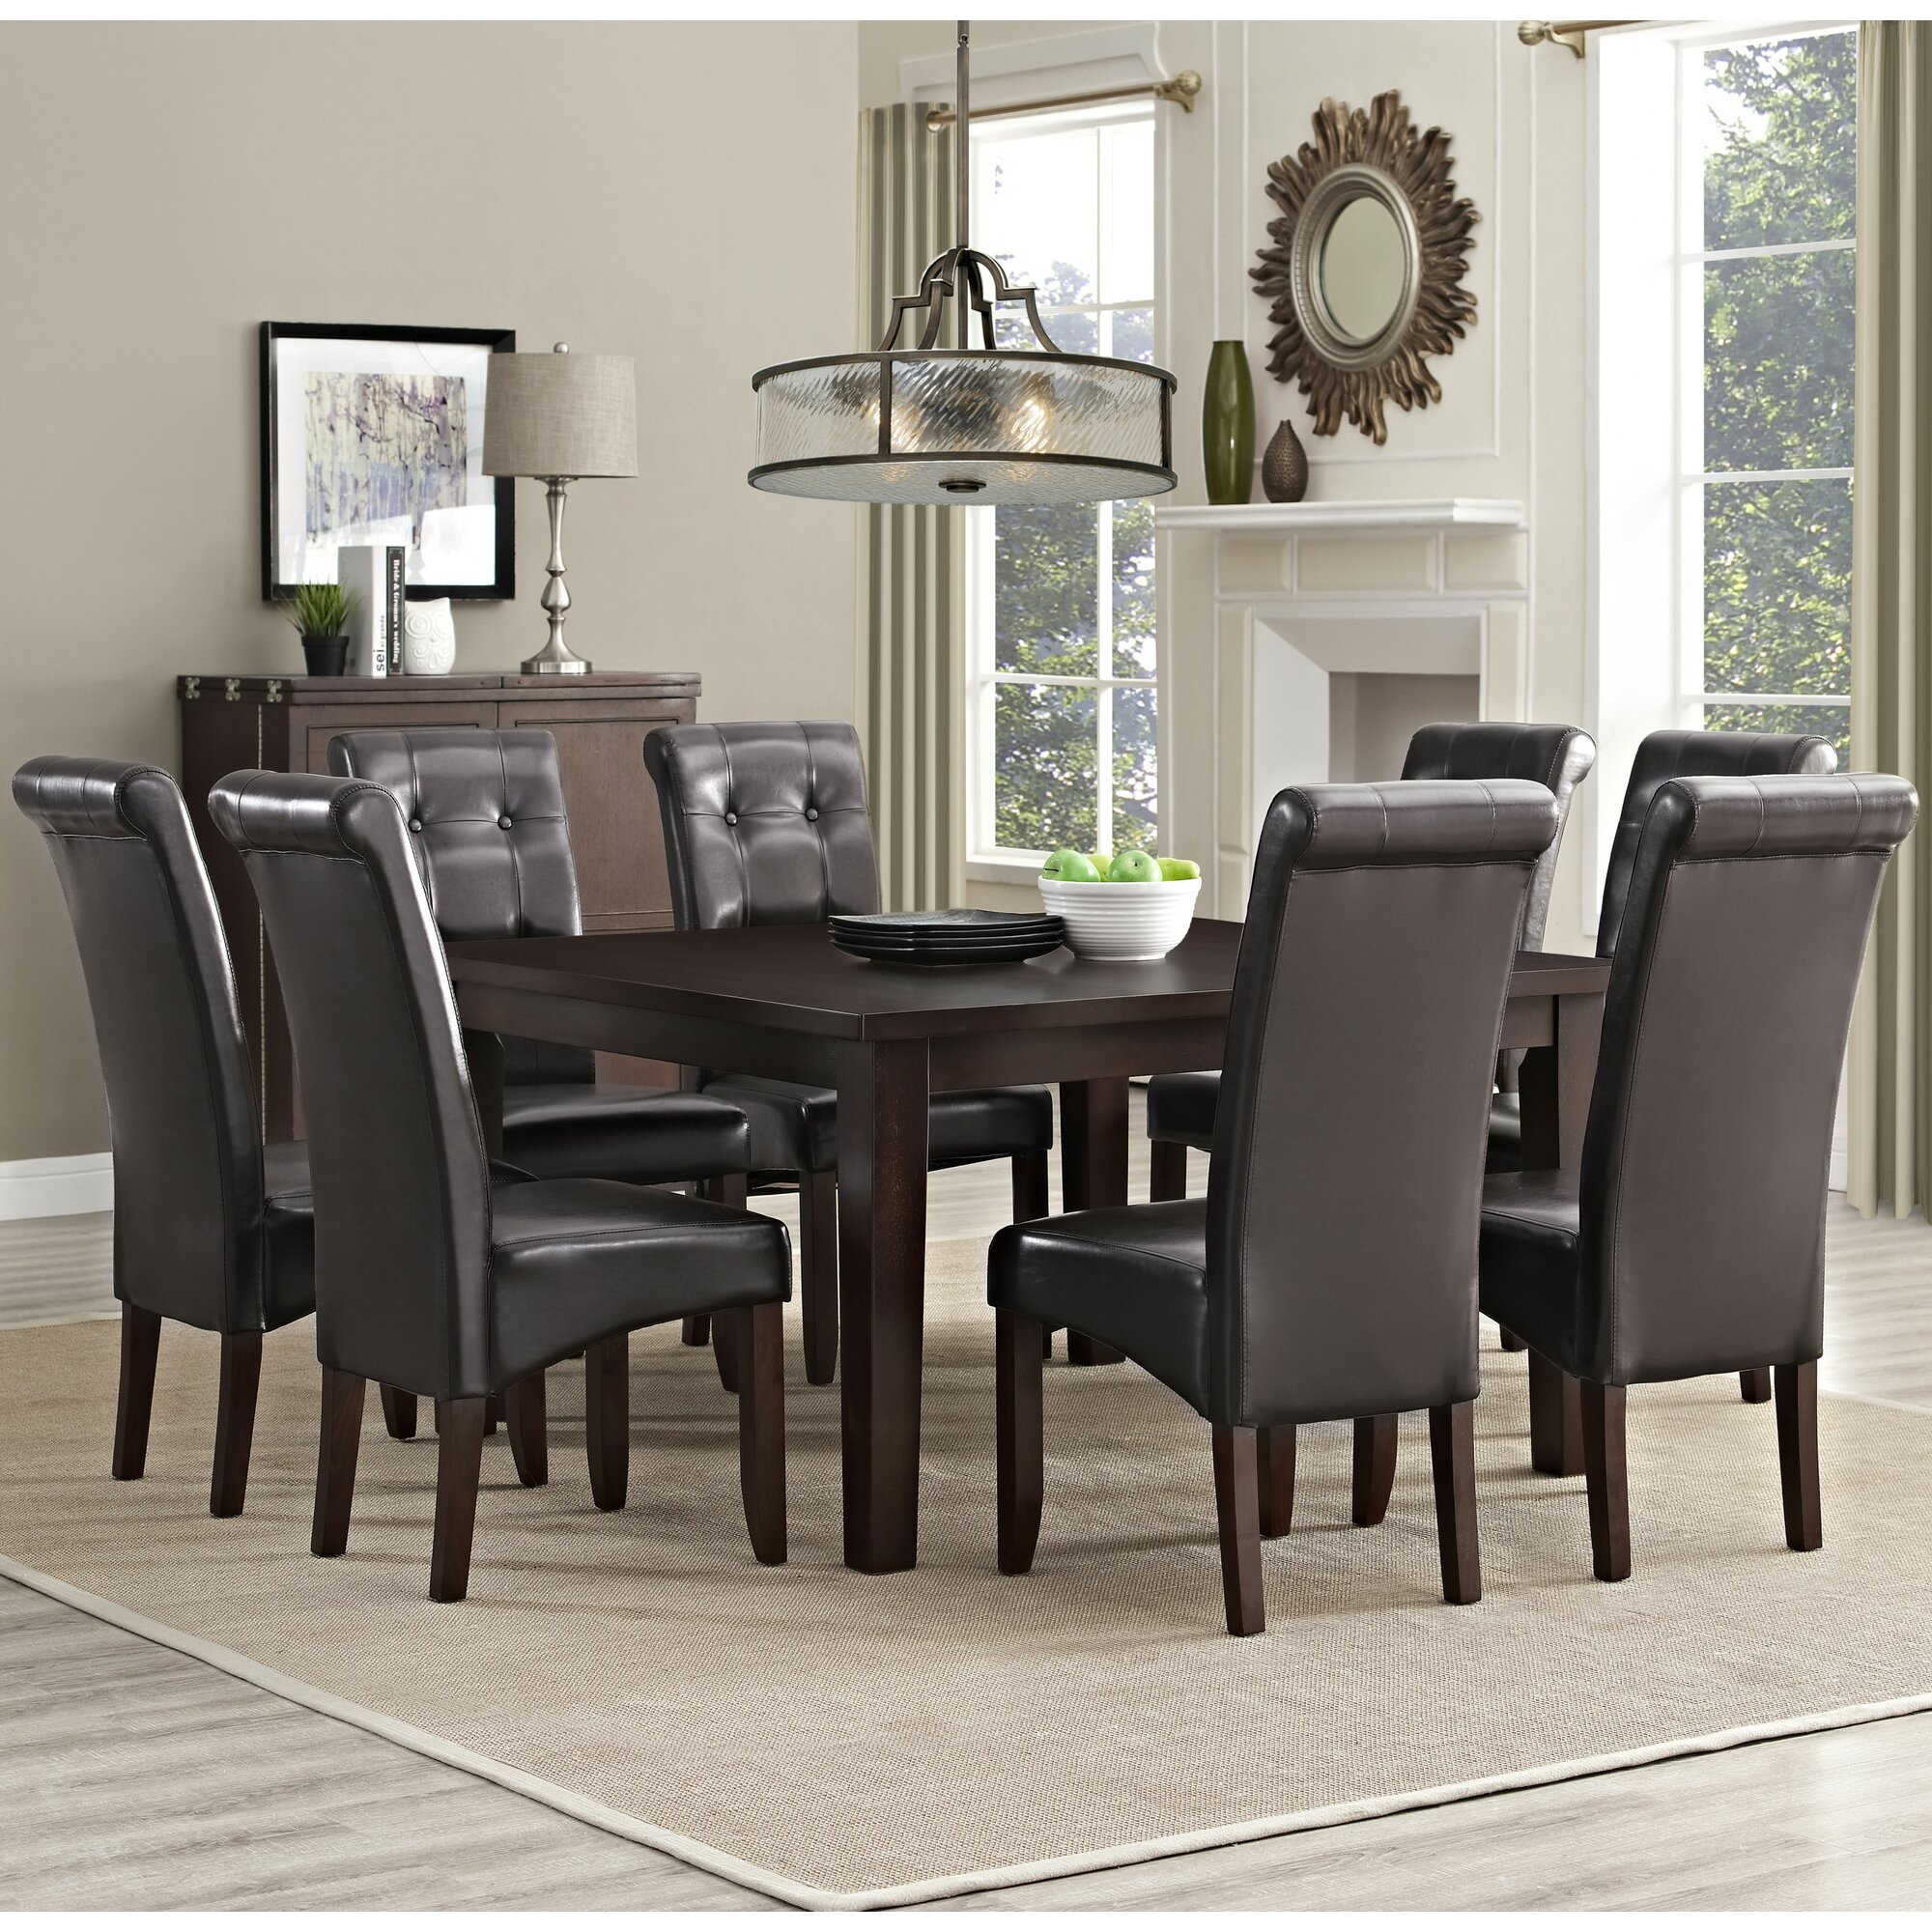 Simpli home eastwood 9 piece dining set reviews wayfair for Dining room furniture 9 piece